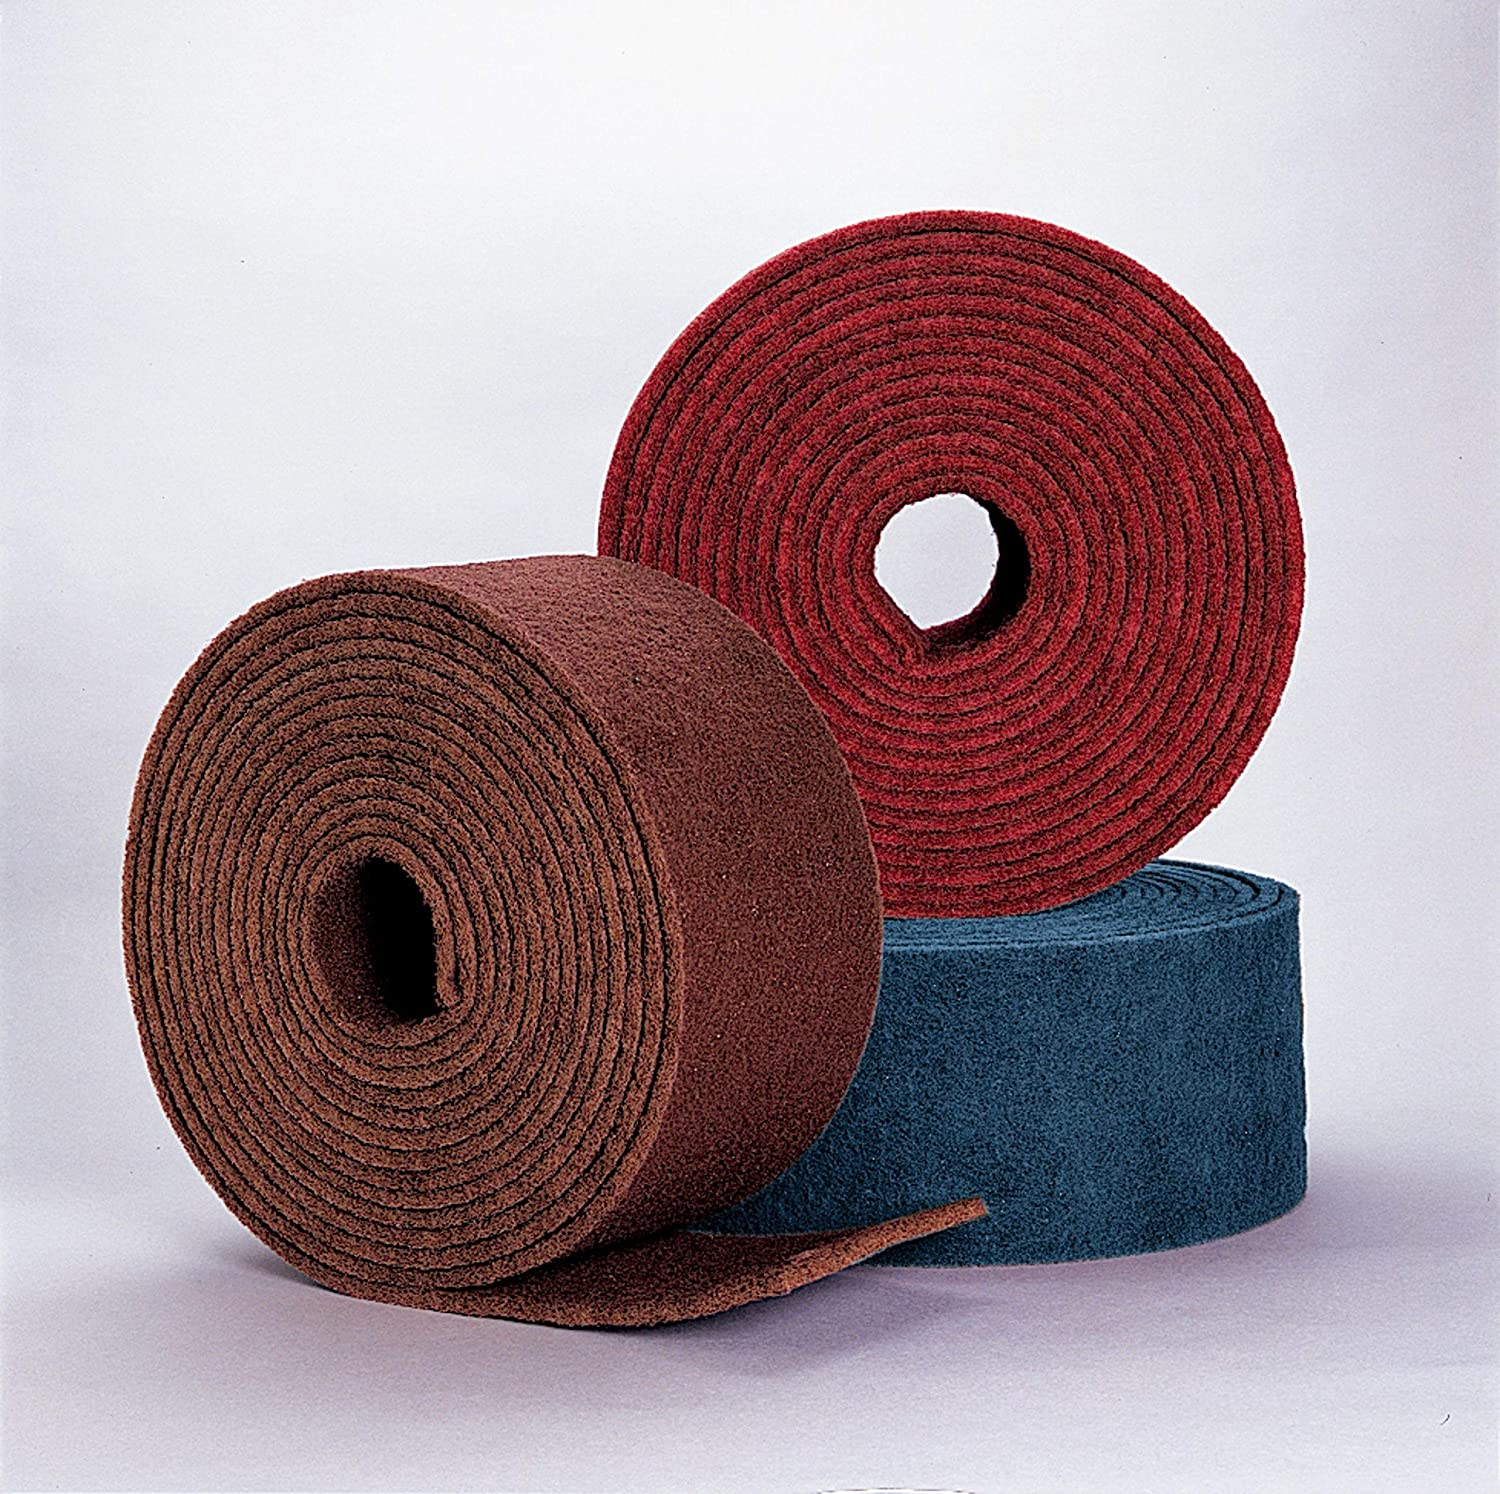 4 x 30  A MED 3 per case Pack of 3 Standard Abrasives 35869-case A//O Buff and Blend HS Roll 830270